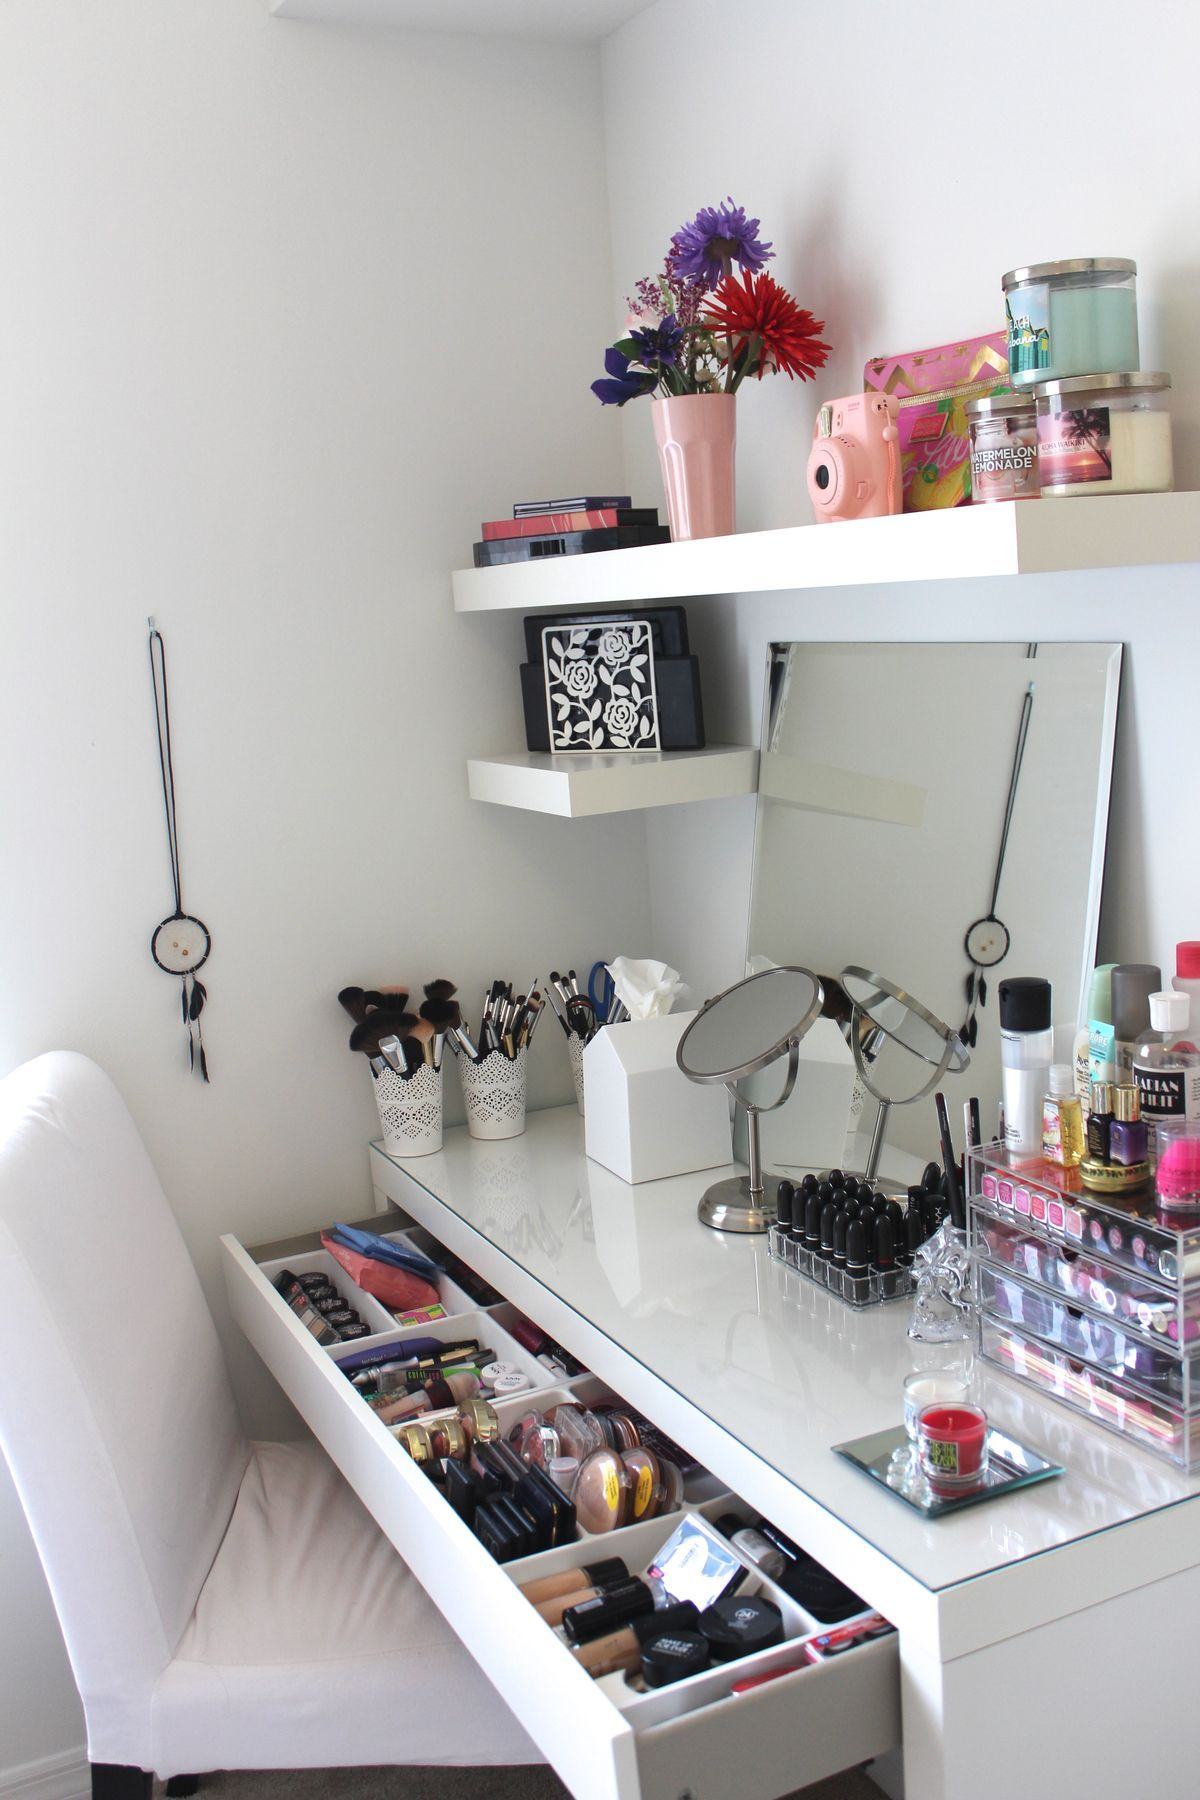 Diy vanity mirror with lights for bathroom and makeup station ikea